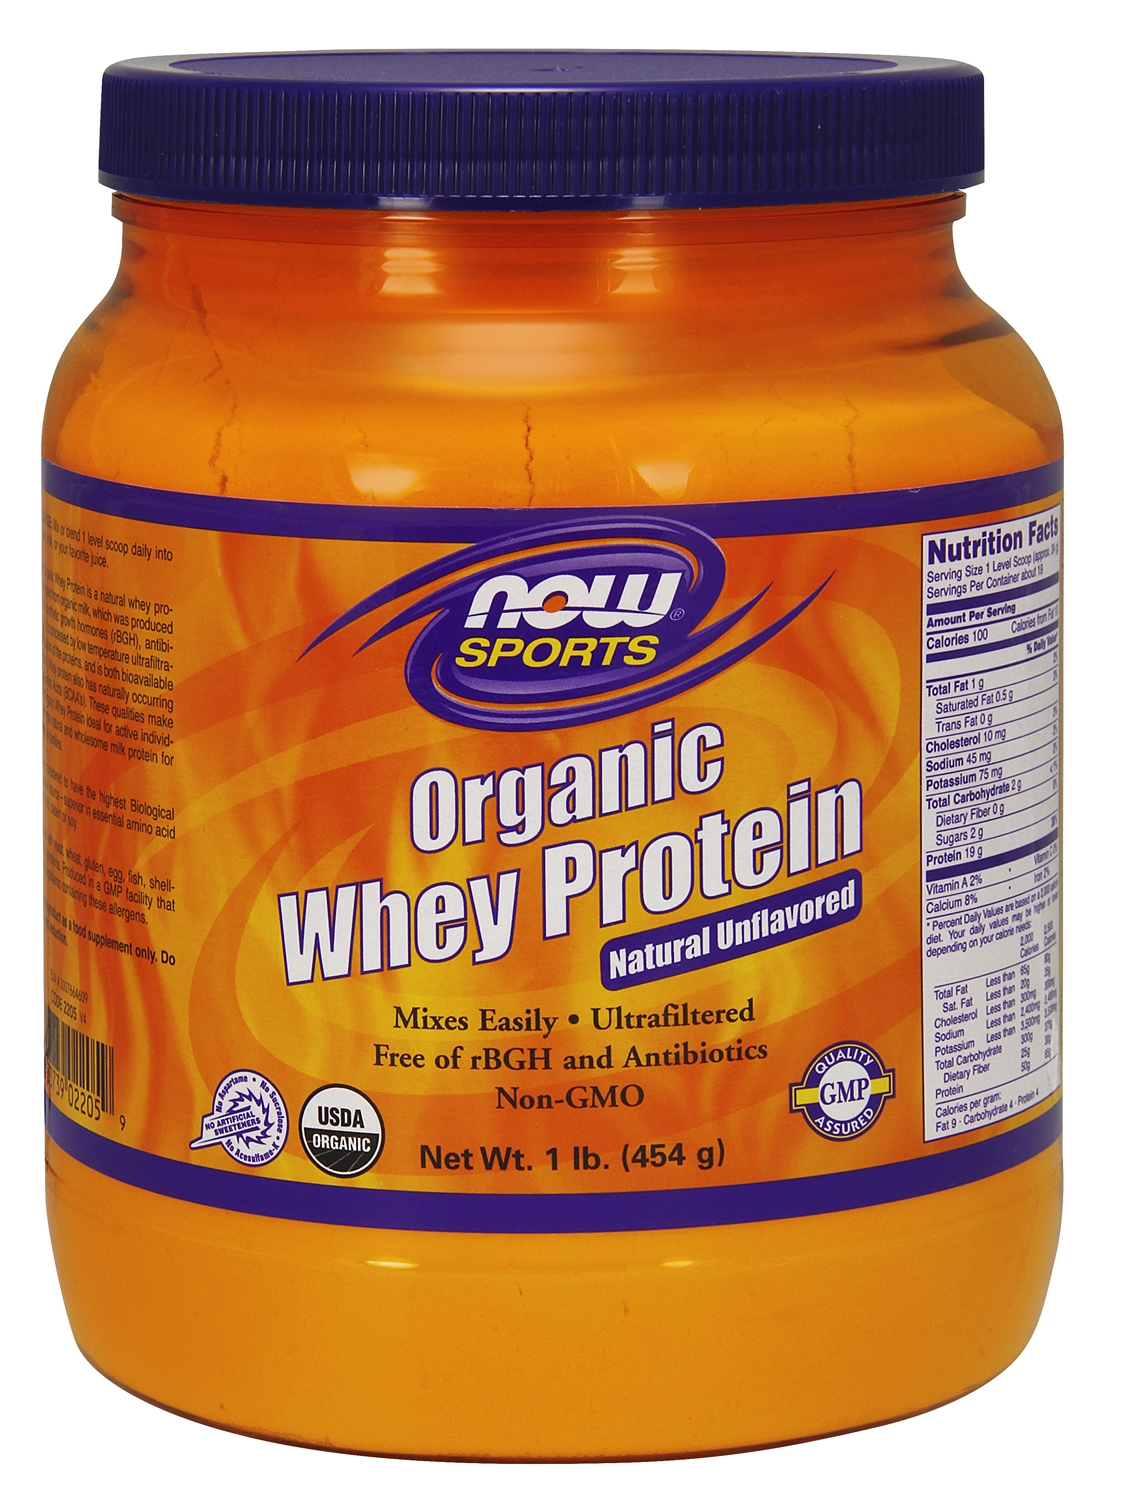 Whey Protein Certified Organic Natural Unflavored 1 lb (454 g) by NOW